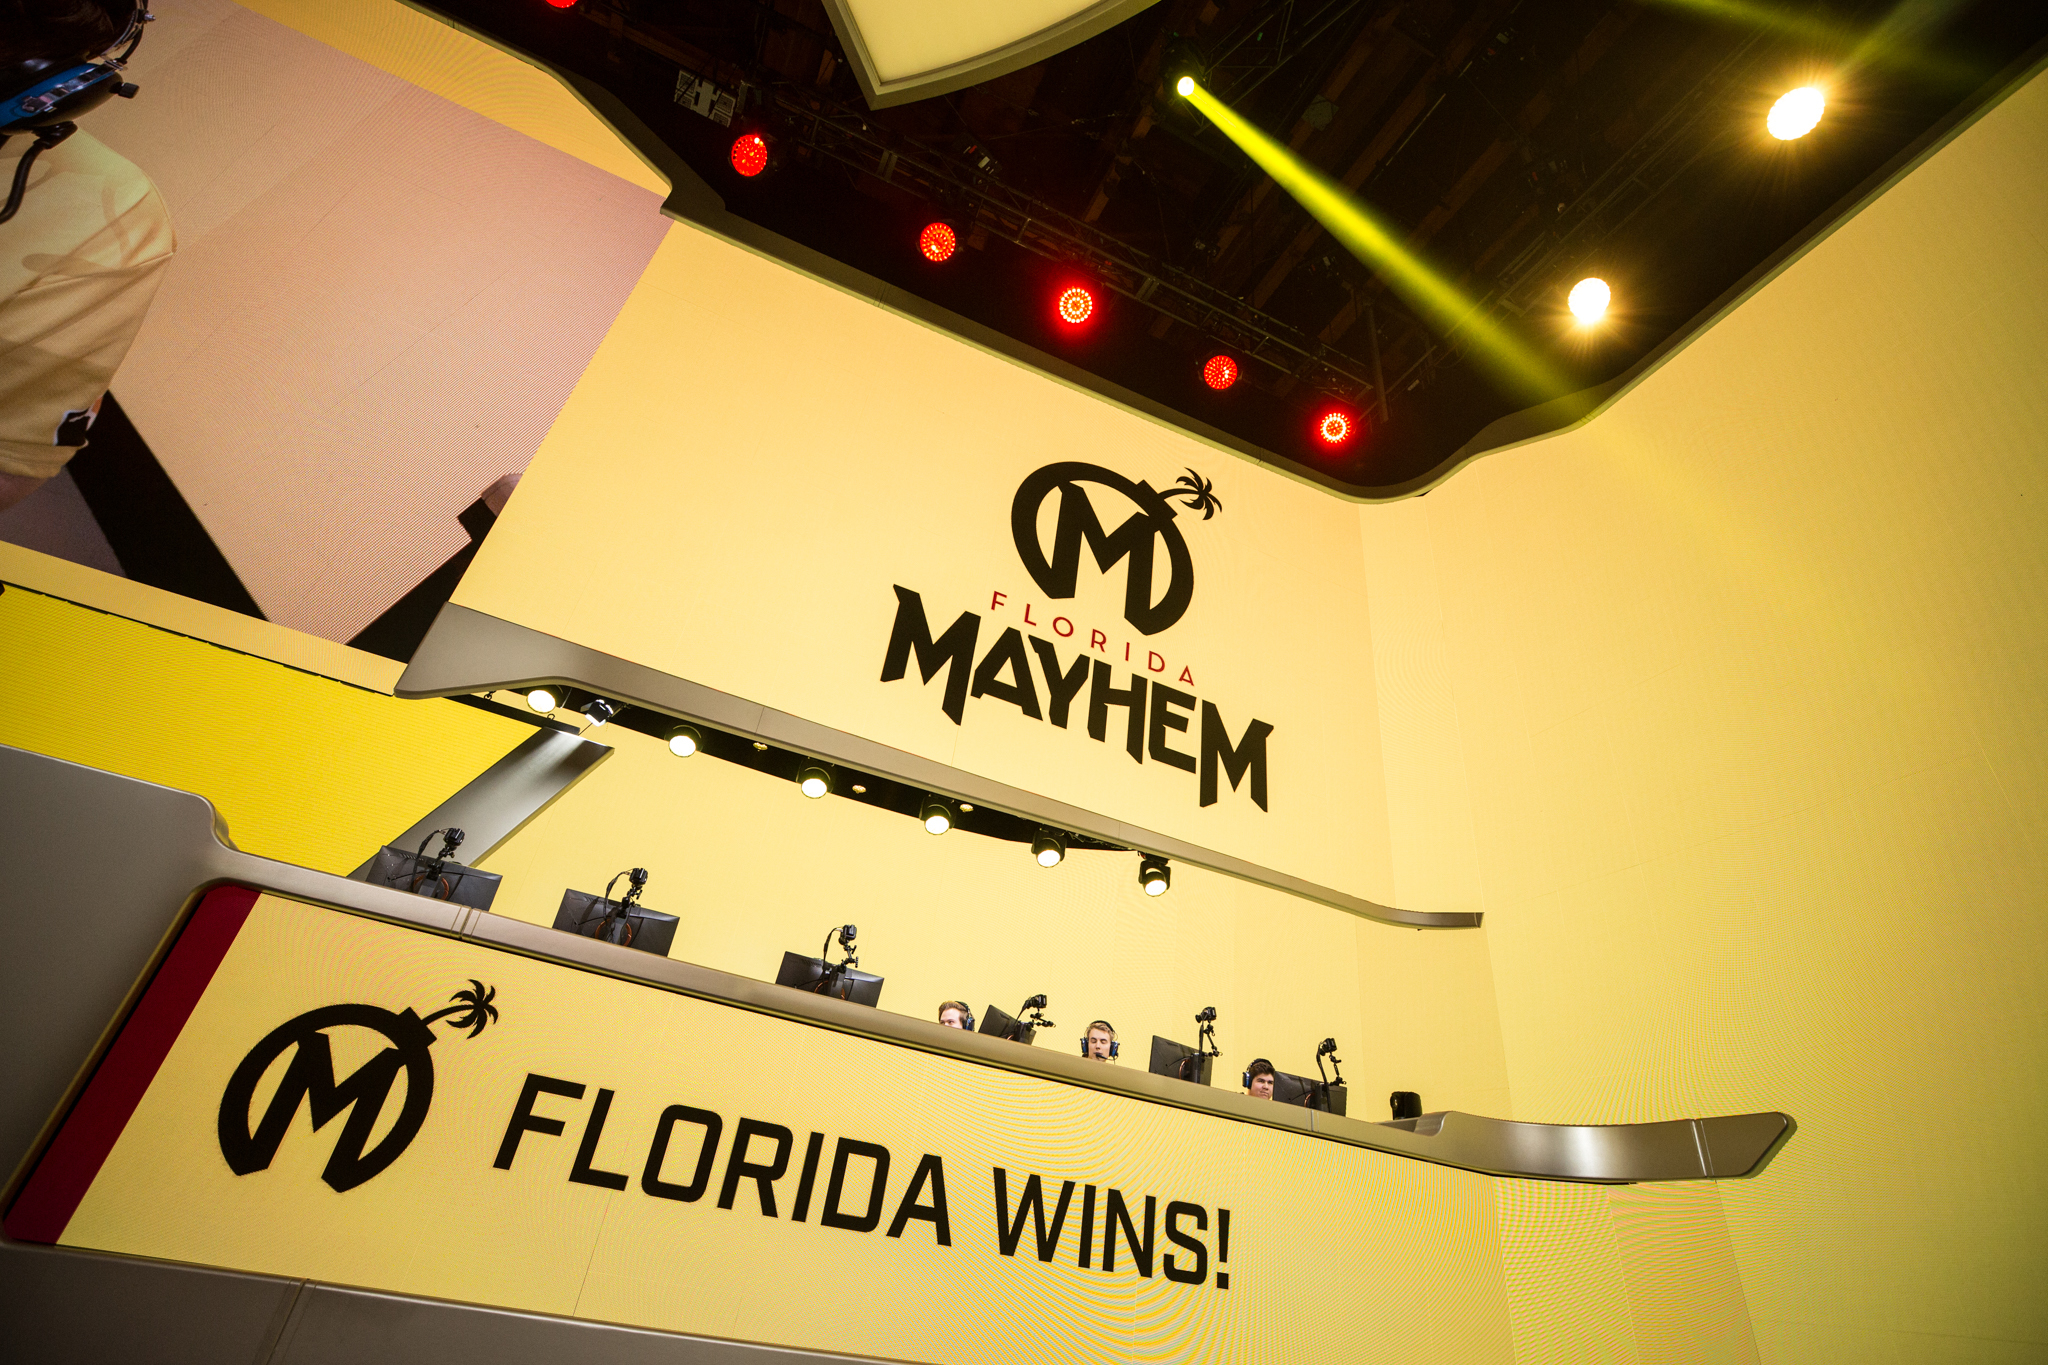 Florida Mayhem, Misfits partner with Gift of Life - Overwatch